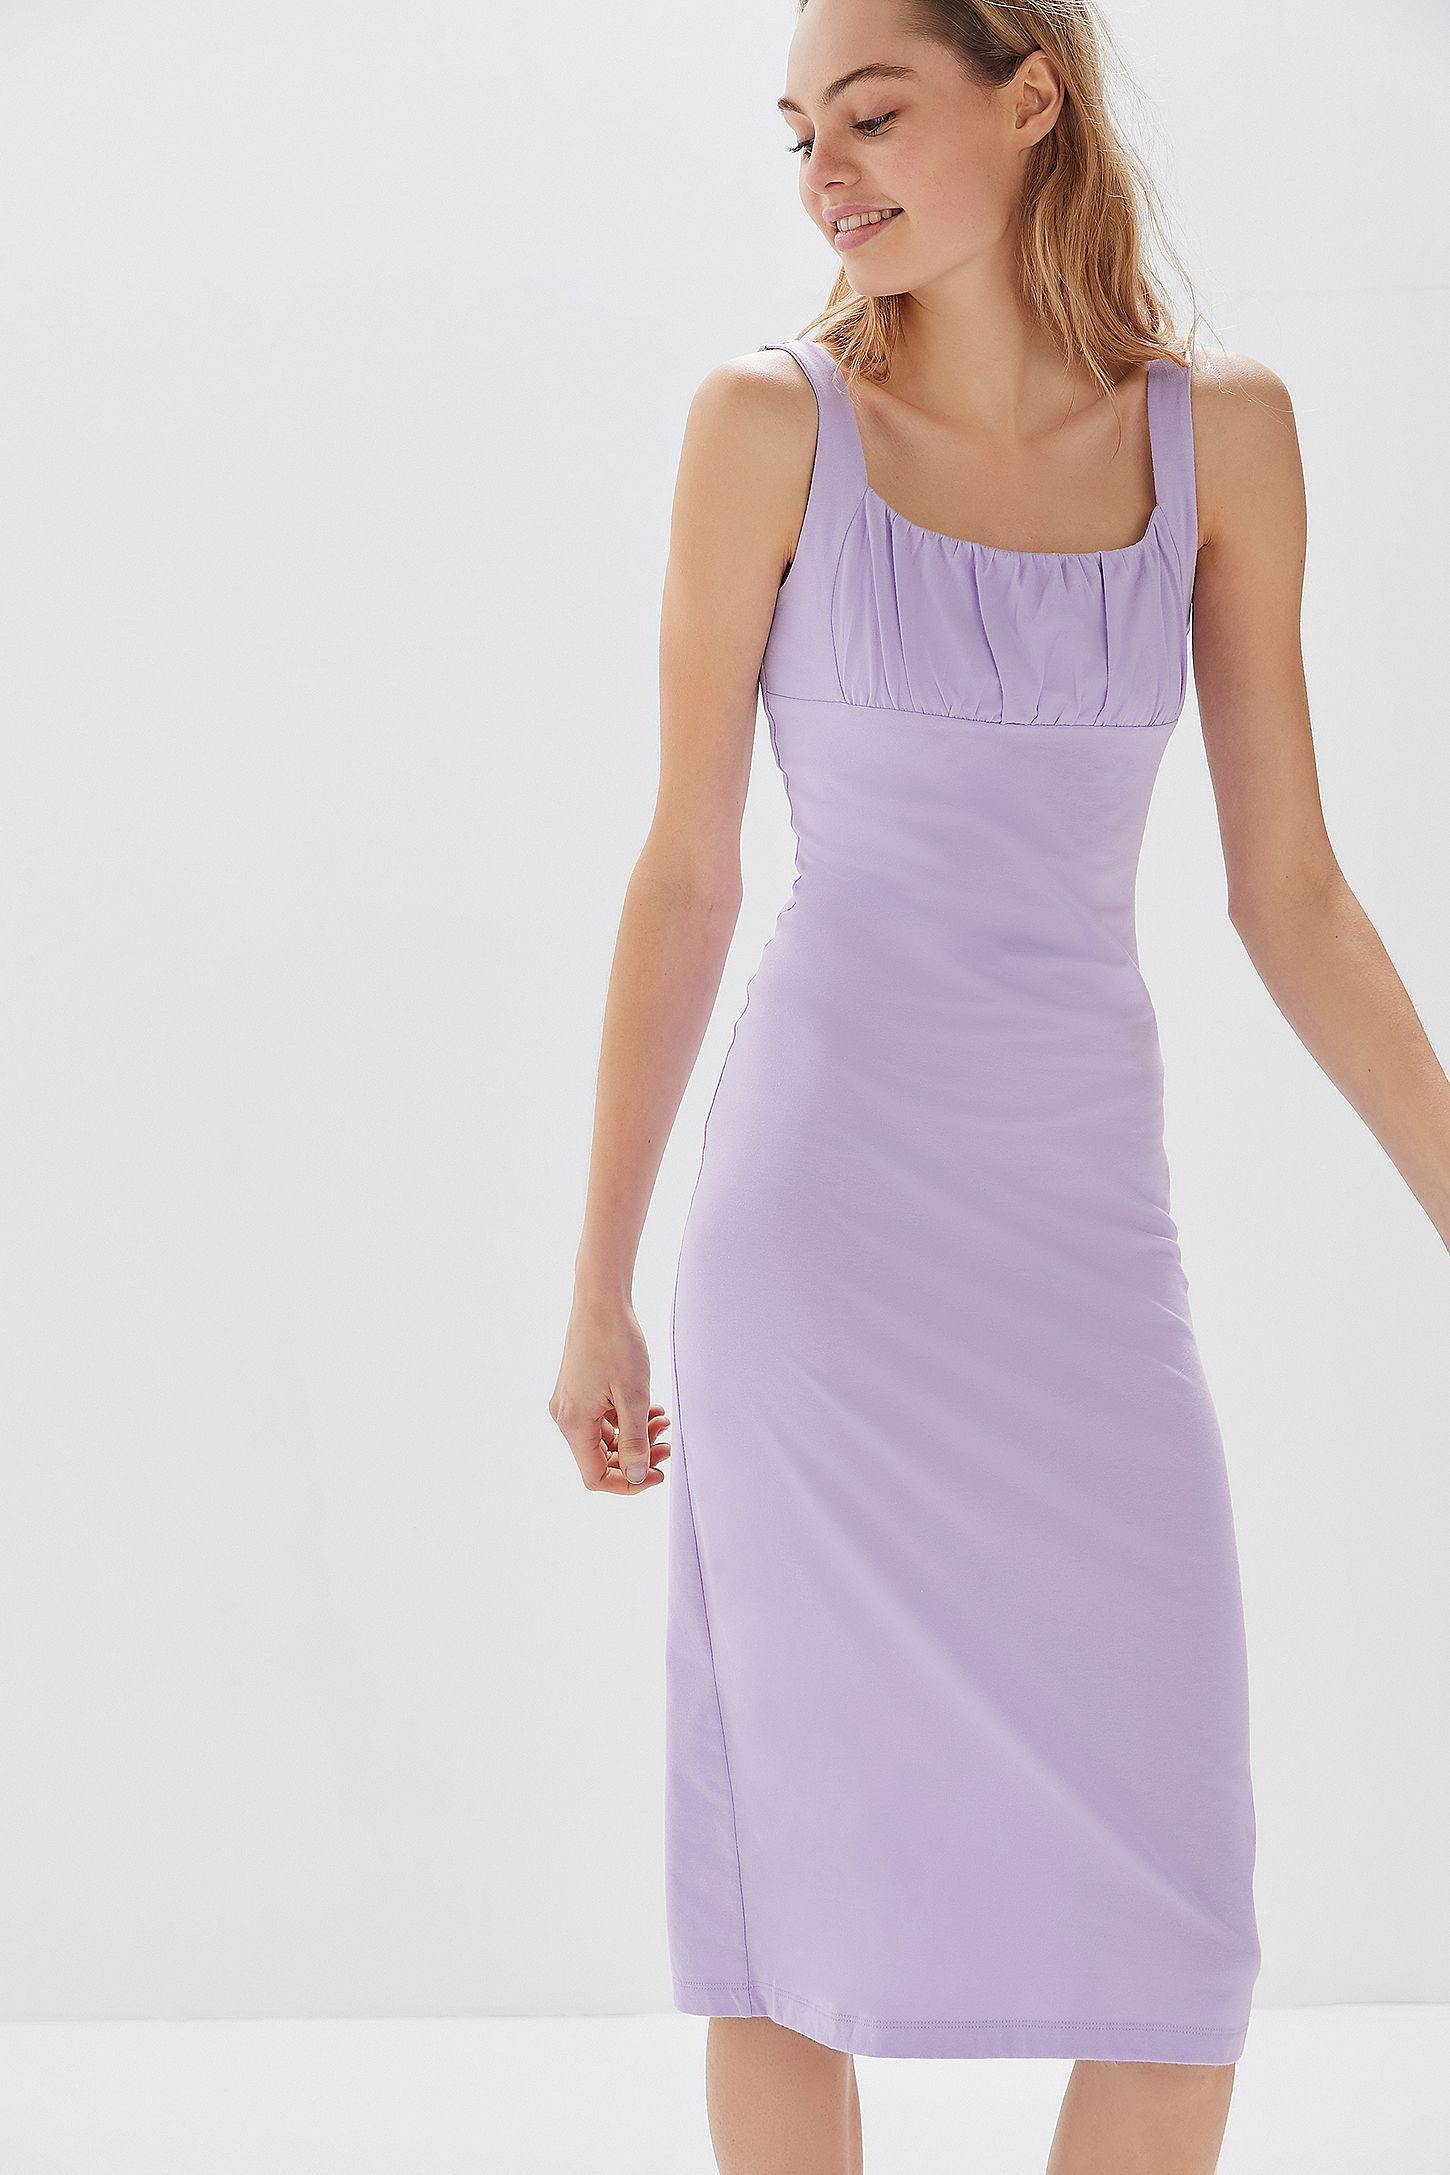 8f677c62858a8 UO Geneva Ruched Empire Waist Midi Dress. Click on image to zoom. Hover to  zoom. Double Tap to Zoom